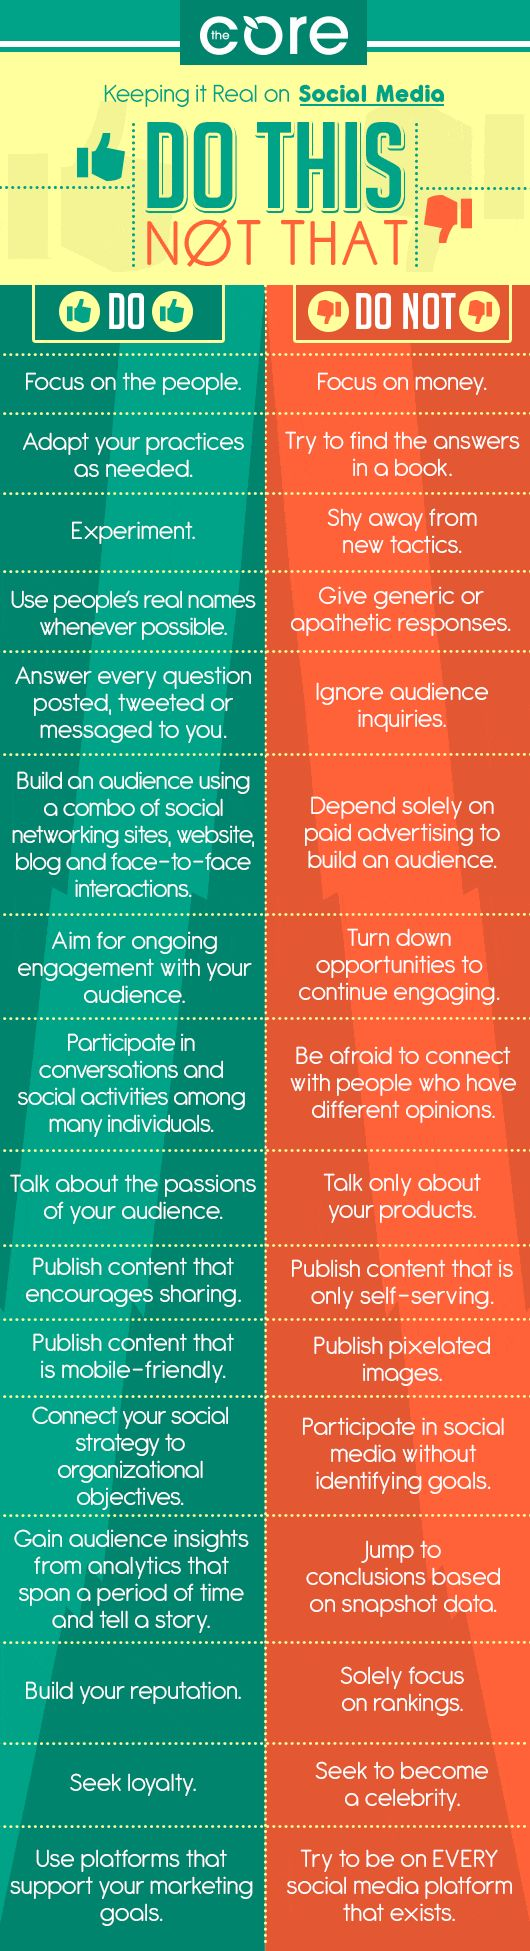 16 Things You Should Do On #SocialMedia To Stand Out http://www.digitalinformationworld.com/2013/07/16-things-you-should-do-on-social-media.html #etiquette More